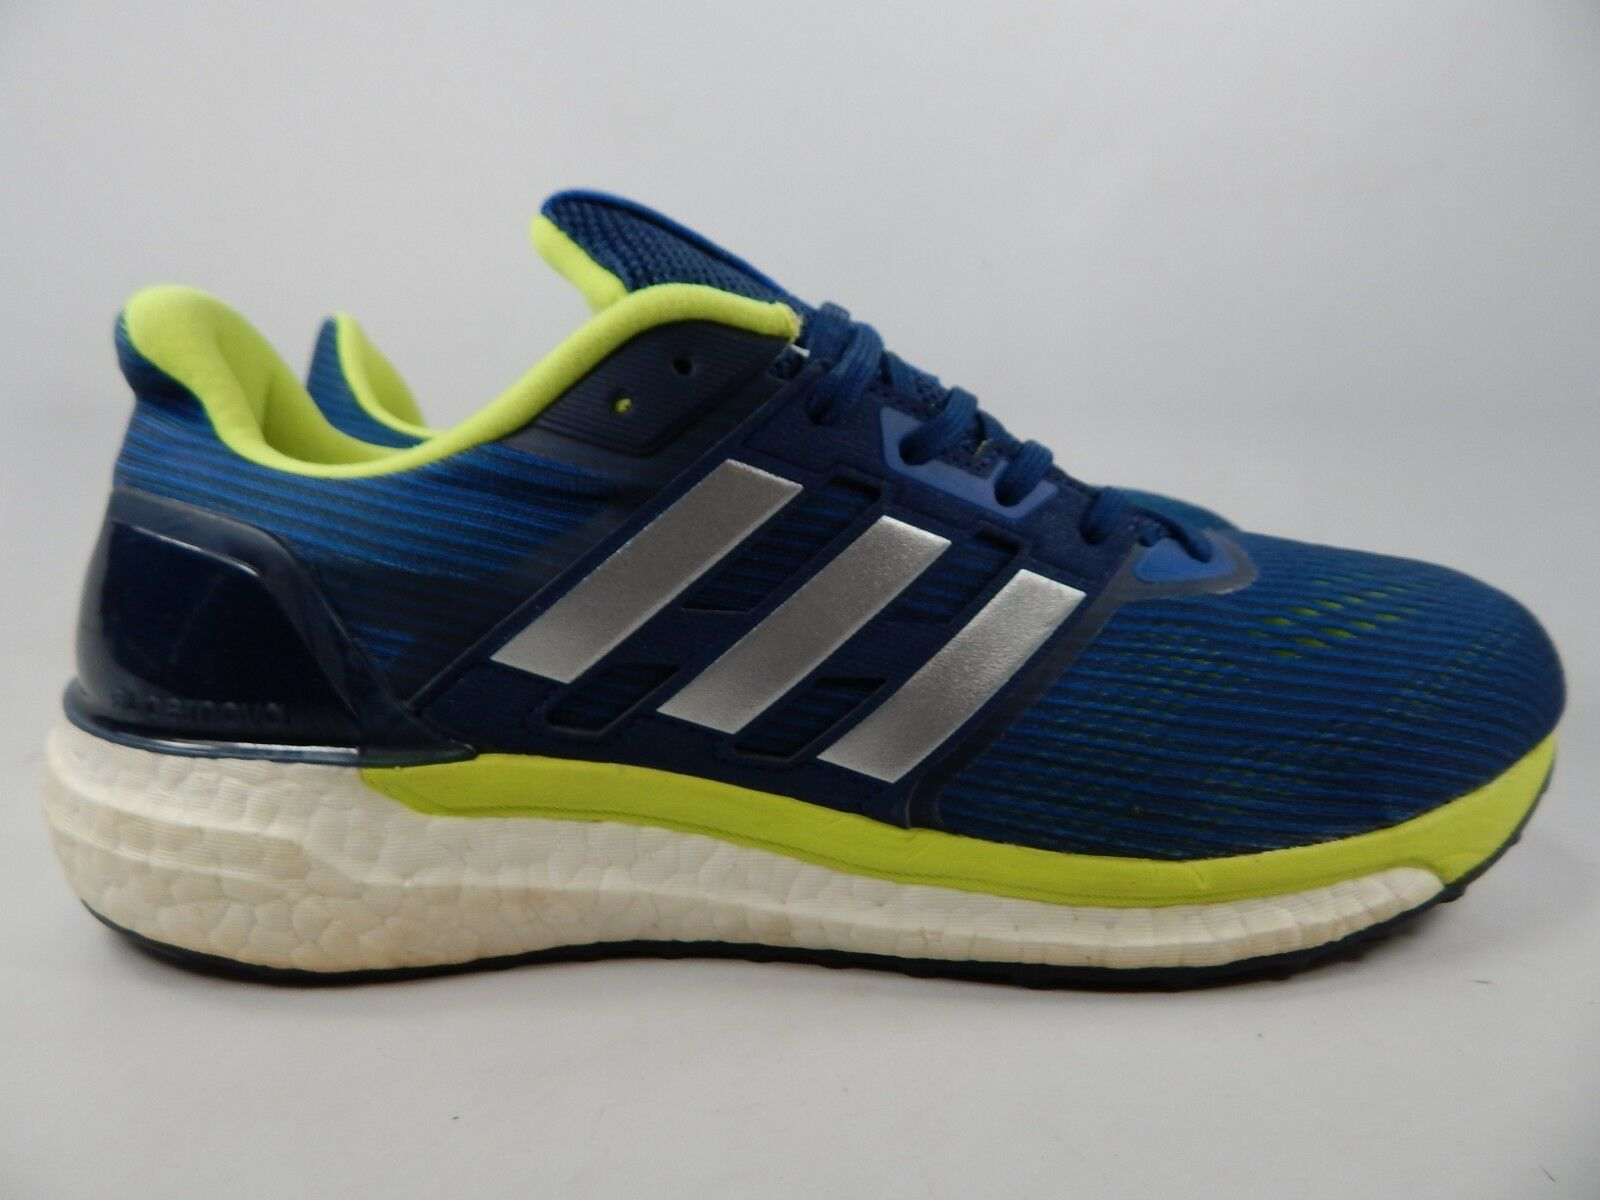 Adidas Supernova Glide 9 Size 10.5 M (D)  3 Men's Running shoes BB6037